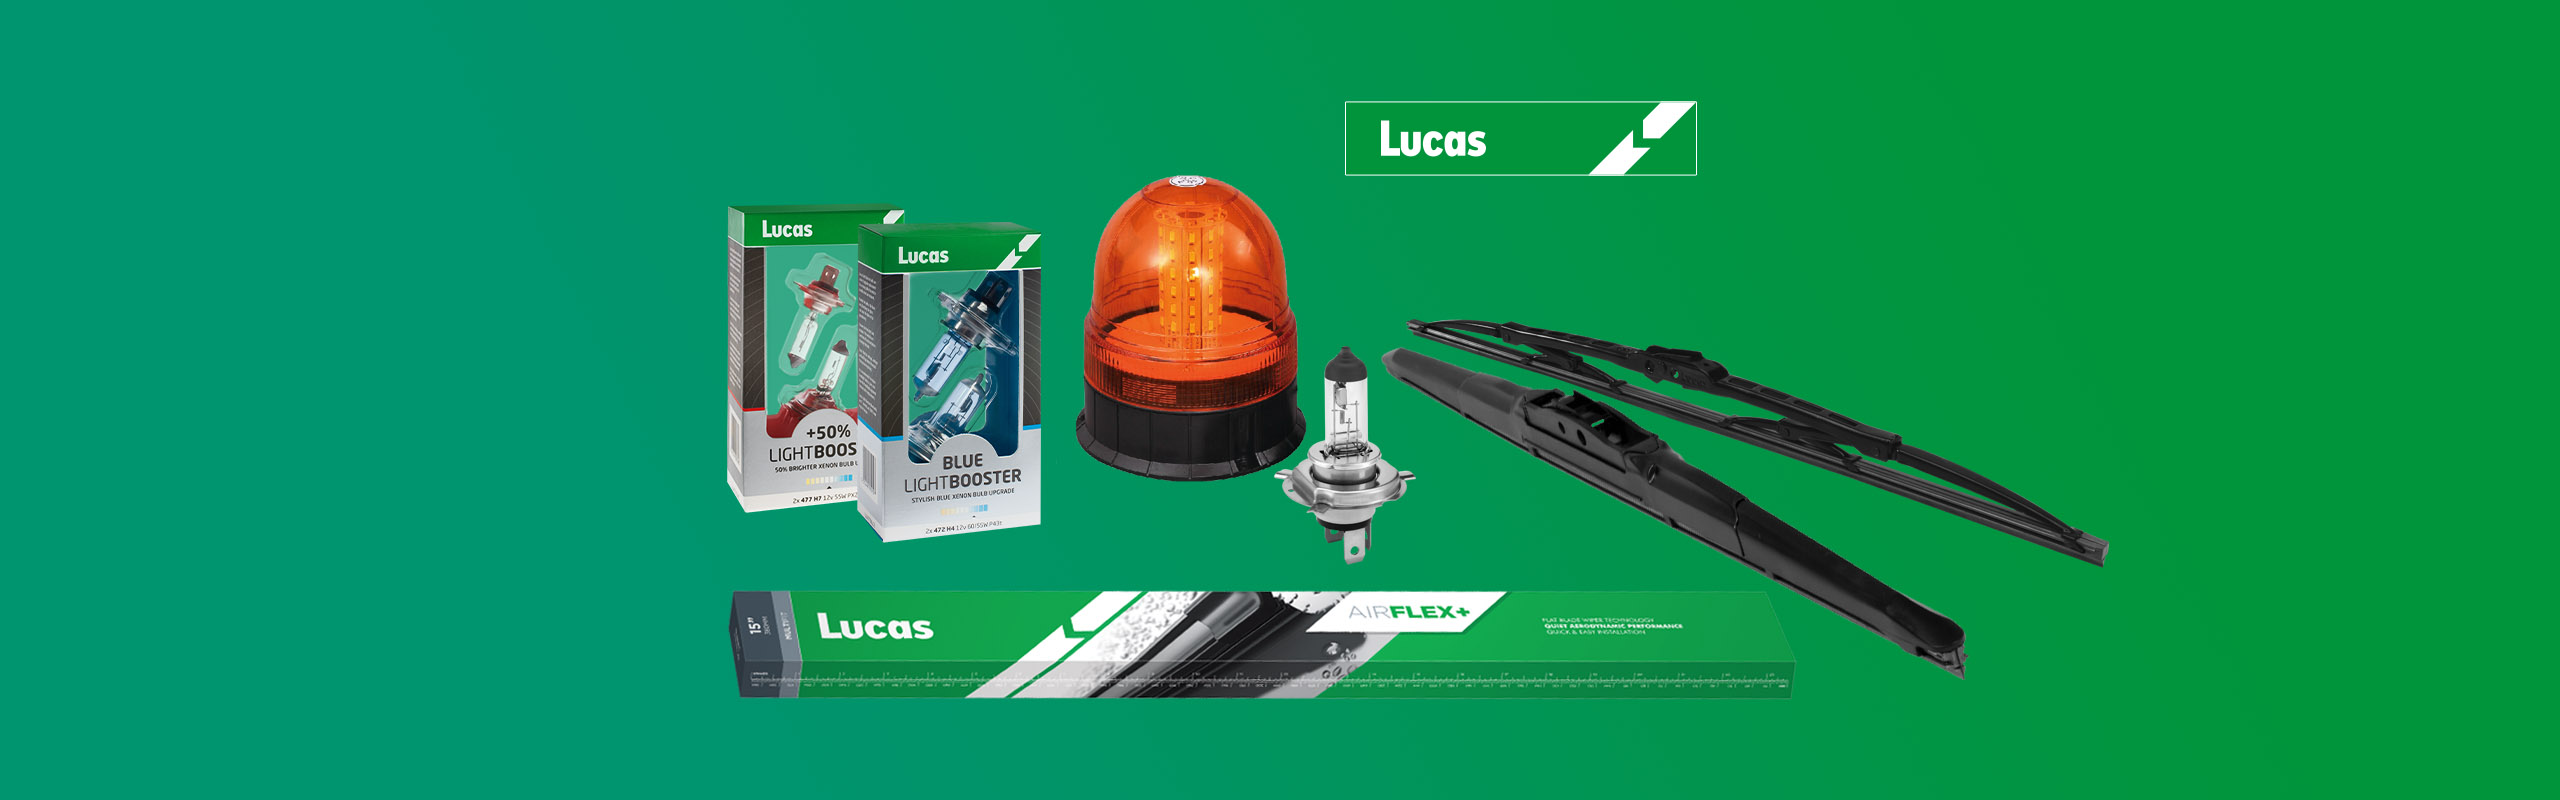 LUCAS-slider-1-new